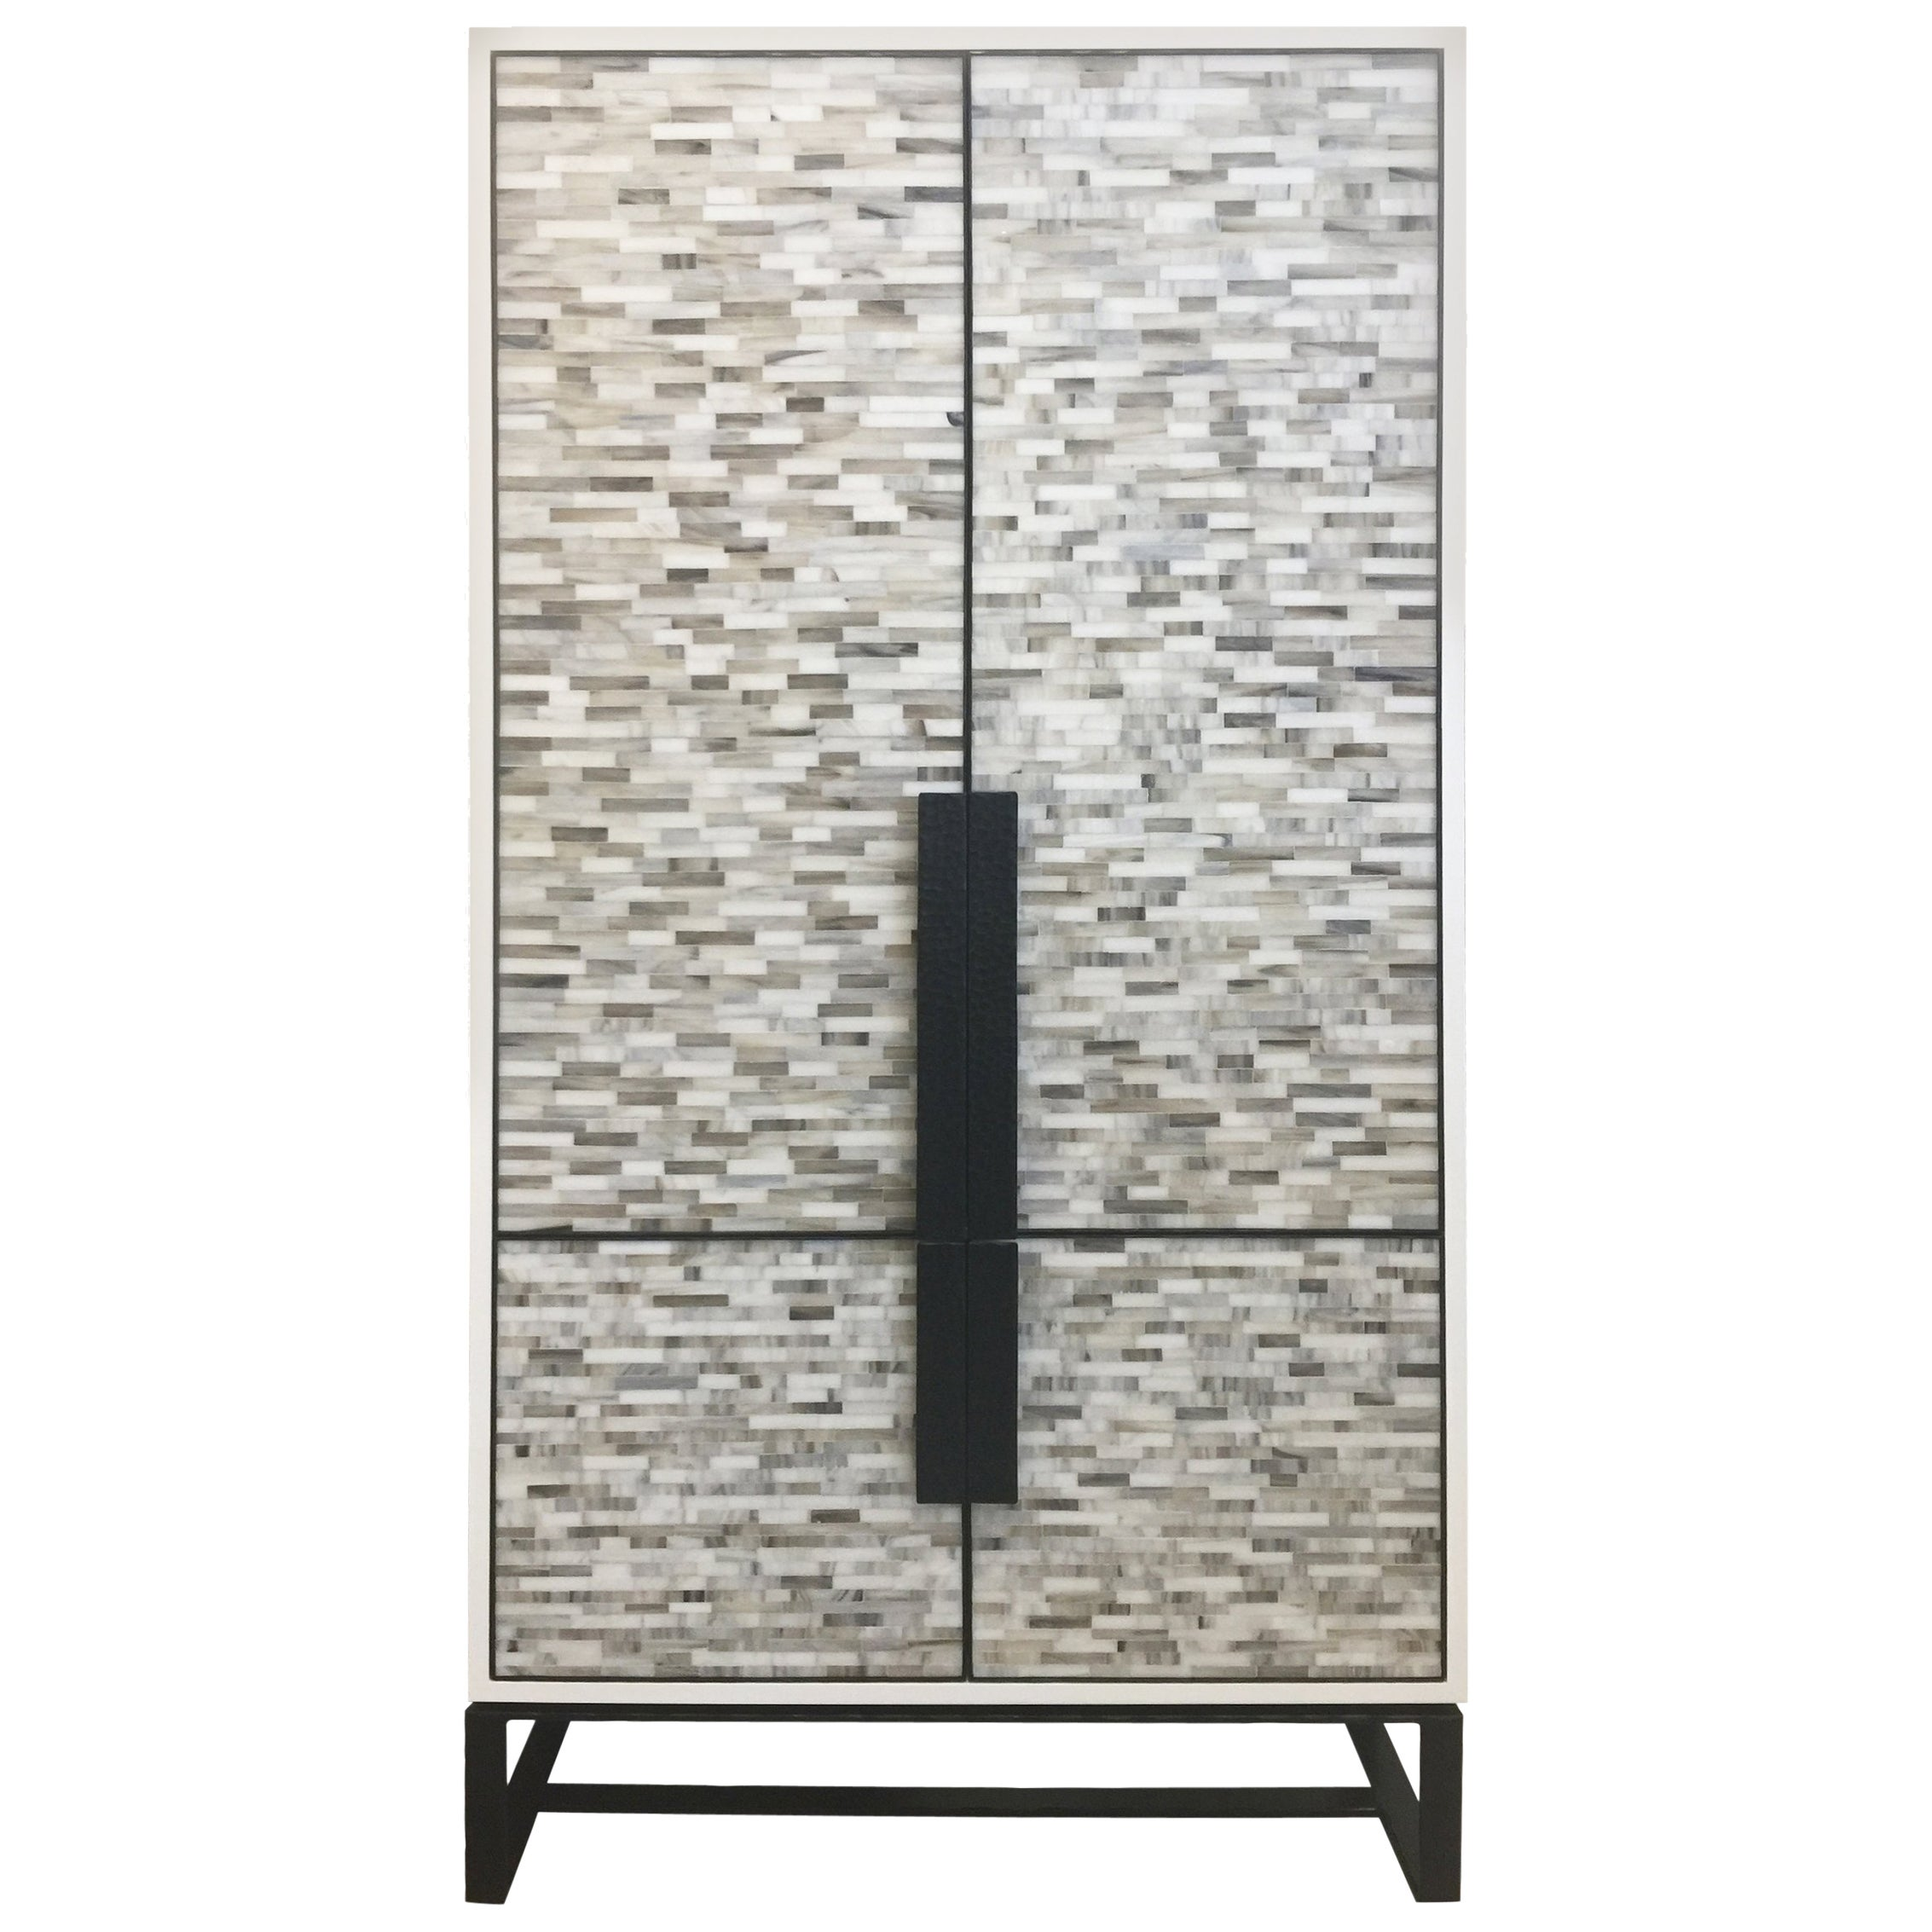 Customizable Chelsea Glass Mosaic Bar Cabinet with Hammered Metal Base by Ercole